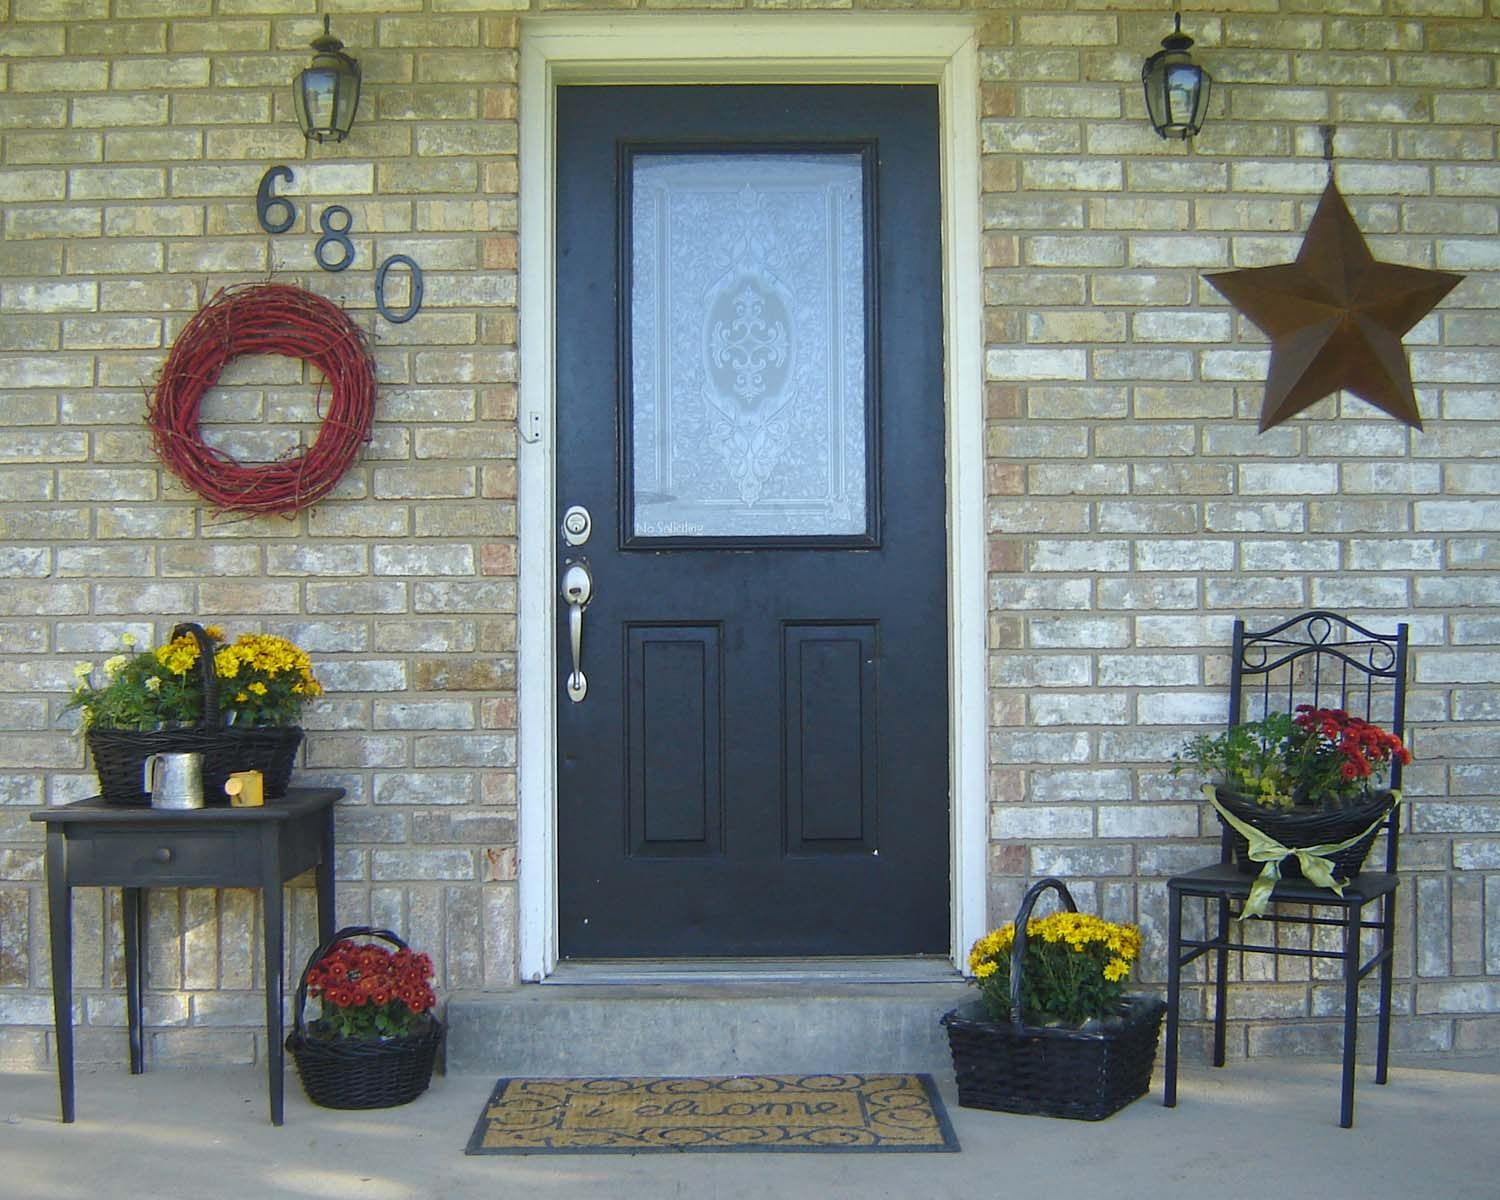 Porch decorating ideas home updates pinterest porch for Small front porch decorating ideas